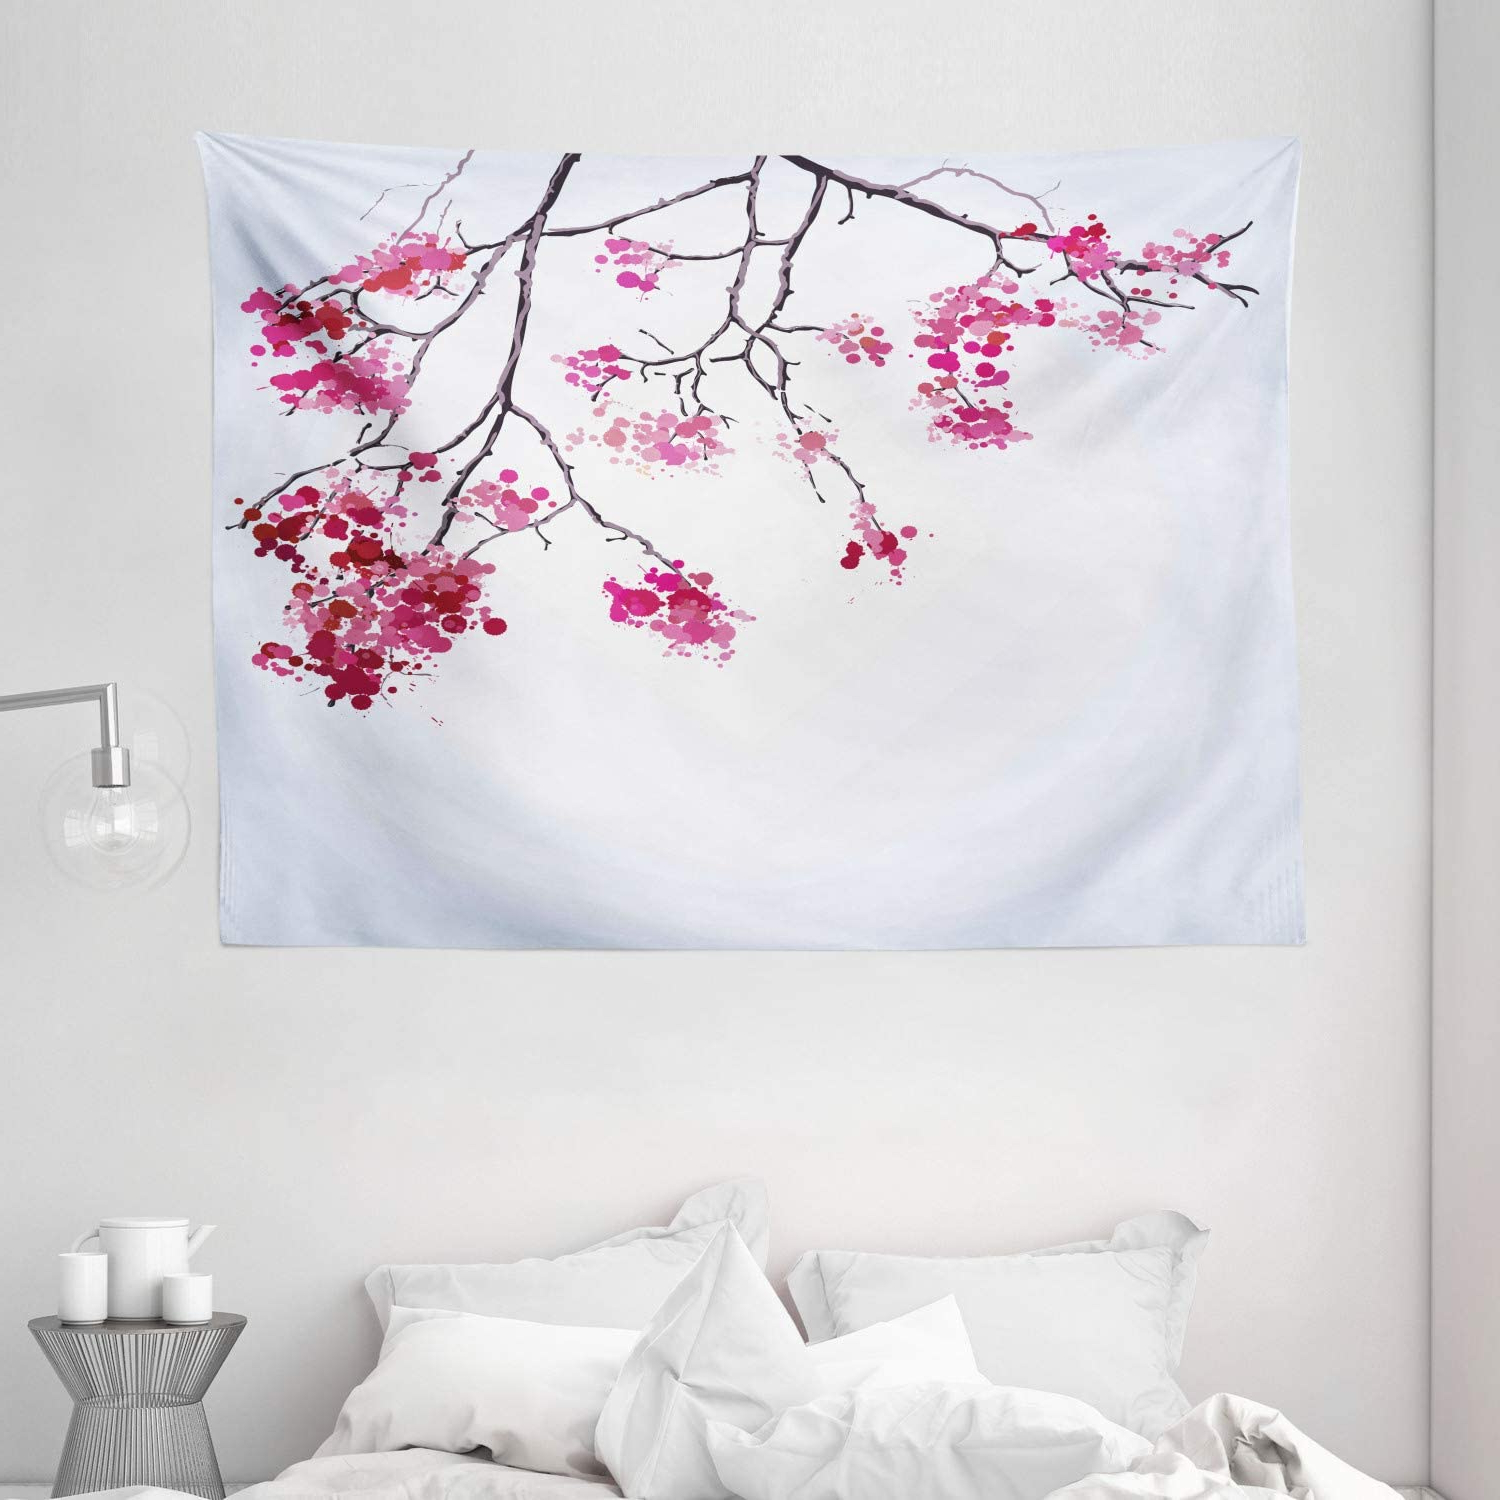 """Most Popular Blended Fabric Spring Party Wall Hangings Pertaining To Ambesonne Japanese Tapestry, Cherry Blossom Sakura Tree Floral Branch Spring Season Theme Image, Wide Wall Hanging For Bedroom Living Room Dorm, 80"""" X (View 6 of 20)"""